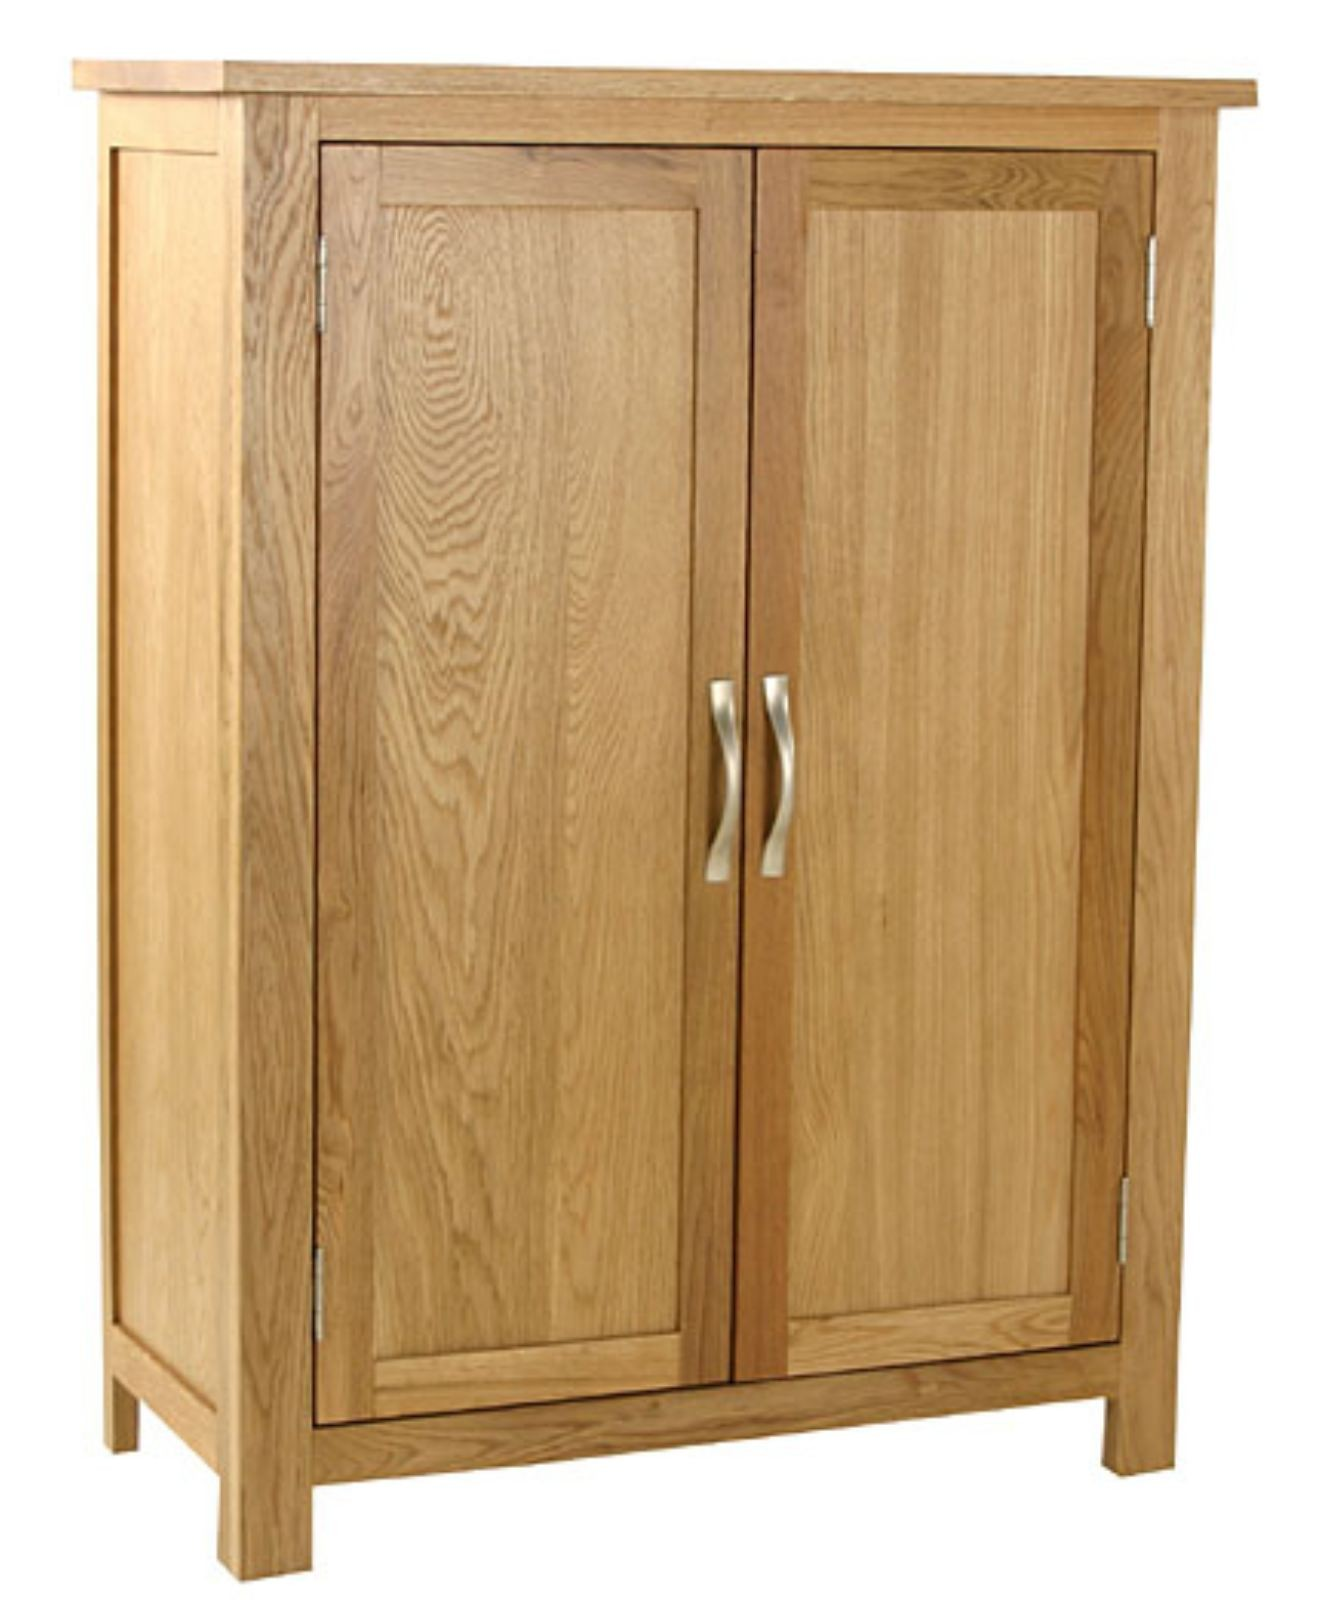 Http Www Ebay Co Uk Itm Langdale Solid Oak Living Dining Room Furniture Large Storage Cupboard 390328613745